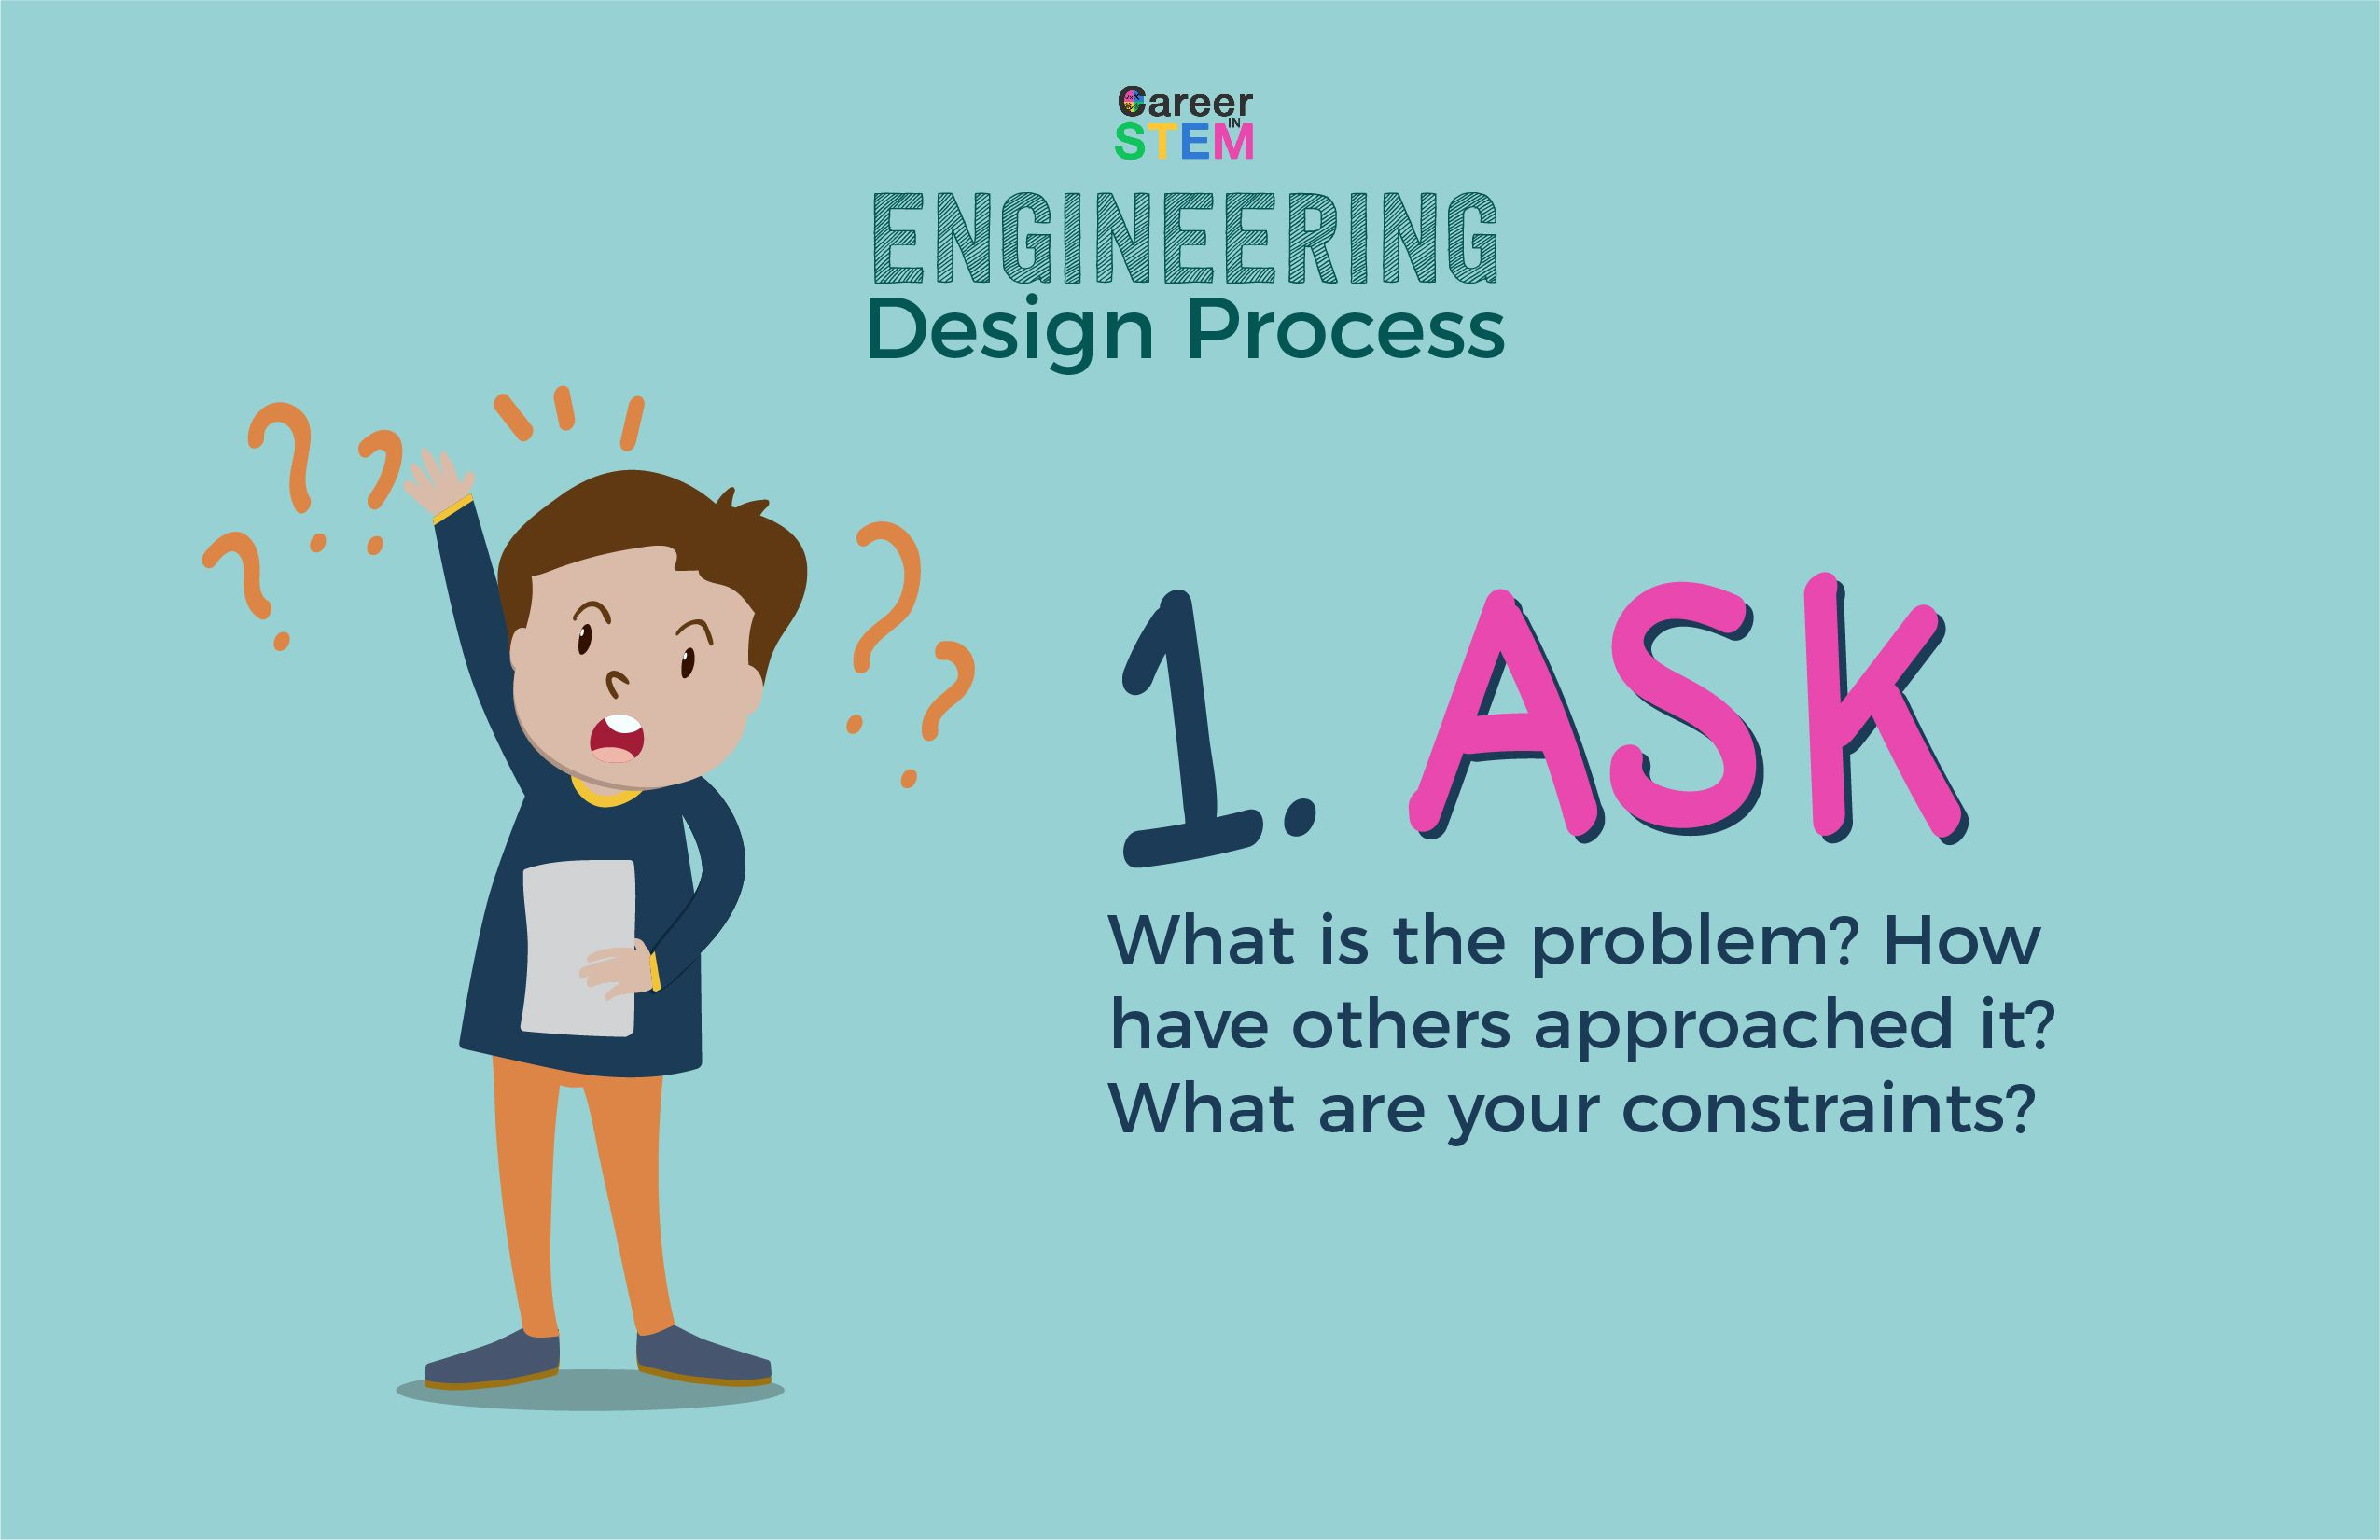 Engineering Design Process Posters Set Of 5 Elementary Stem Posters With Images Engineering Design Process Engineering Design Design Process